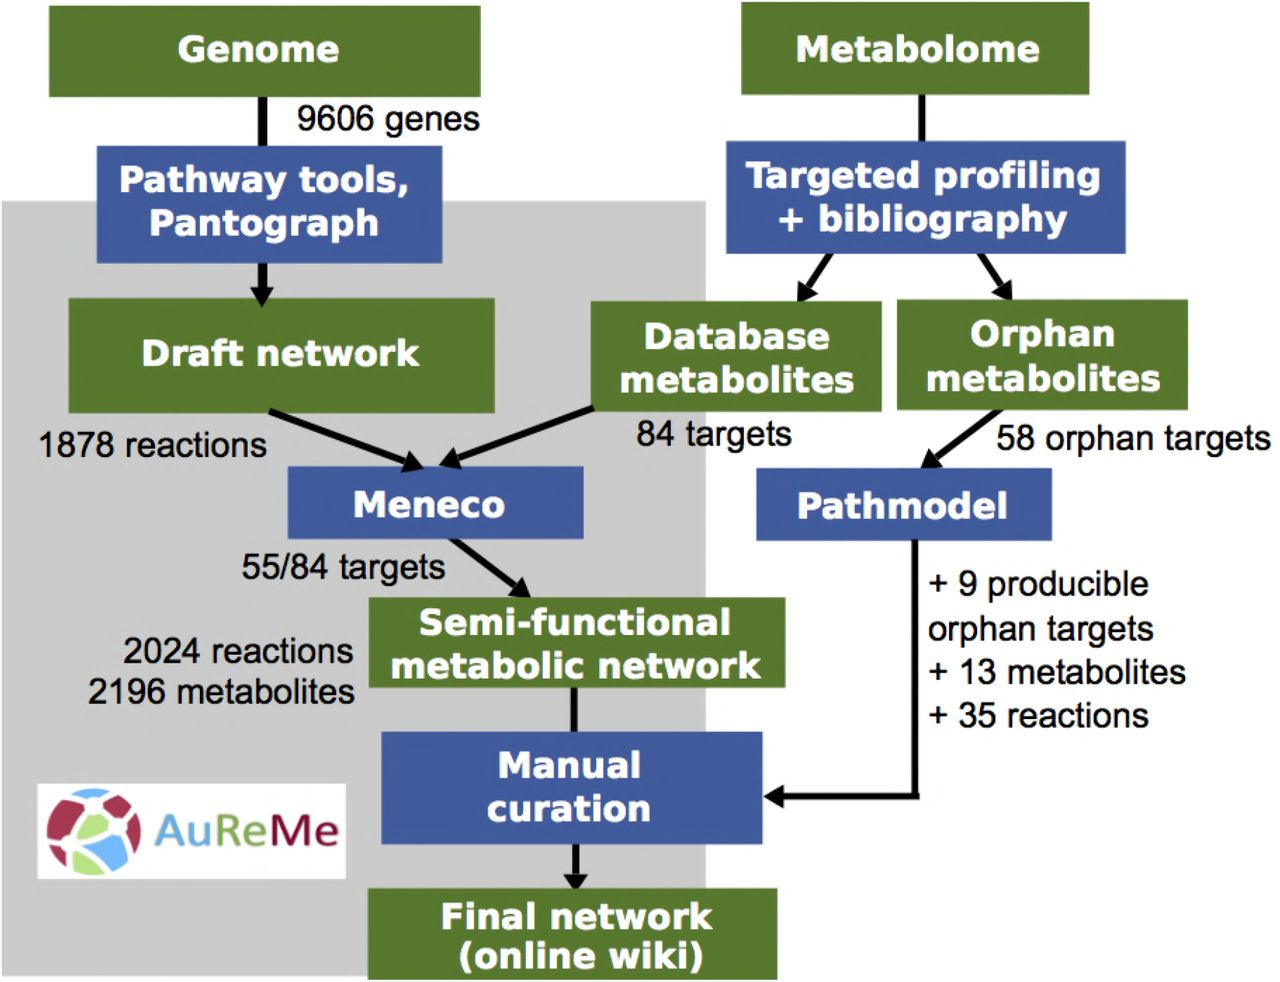 Inferring biochemical reactions and metabolite structures to